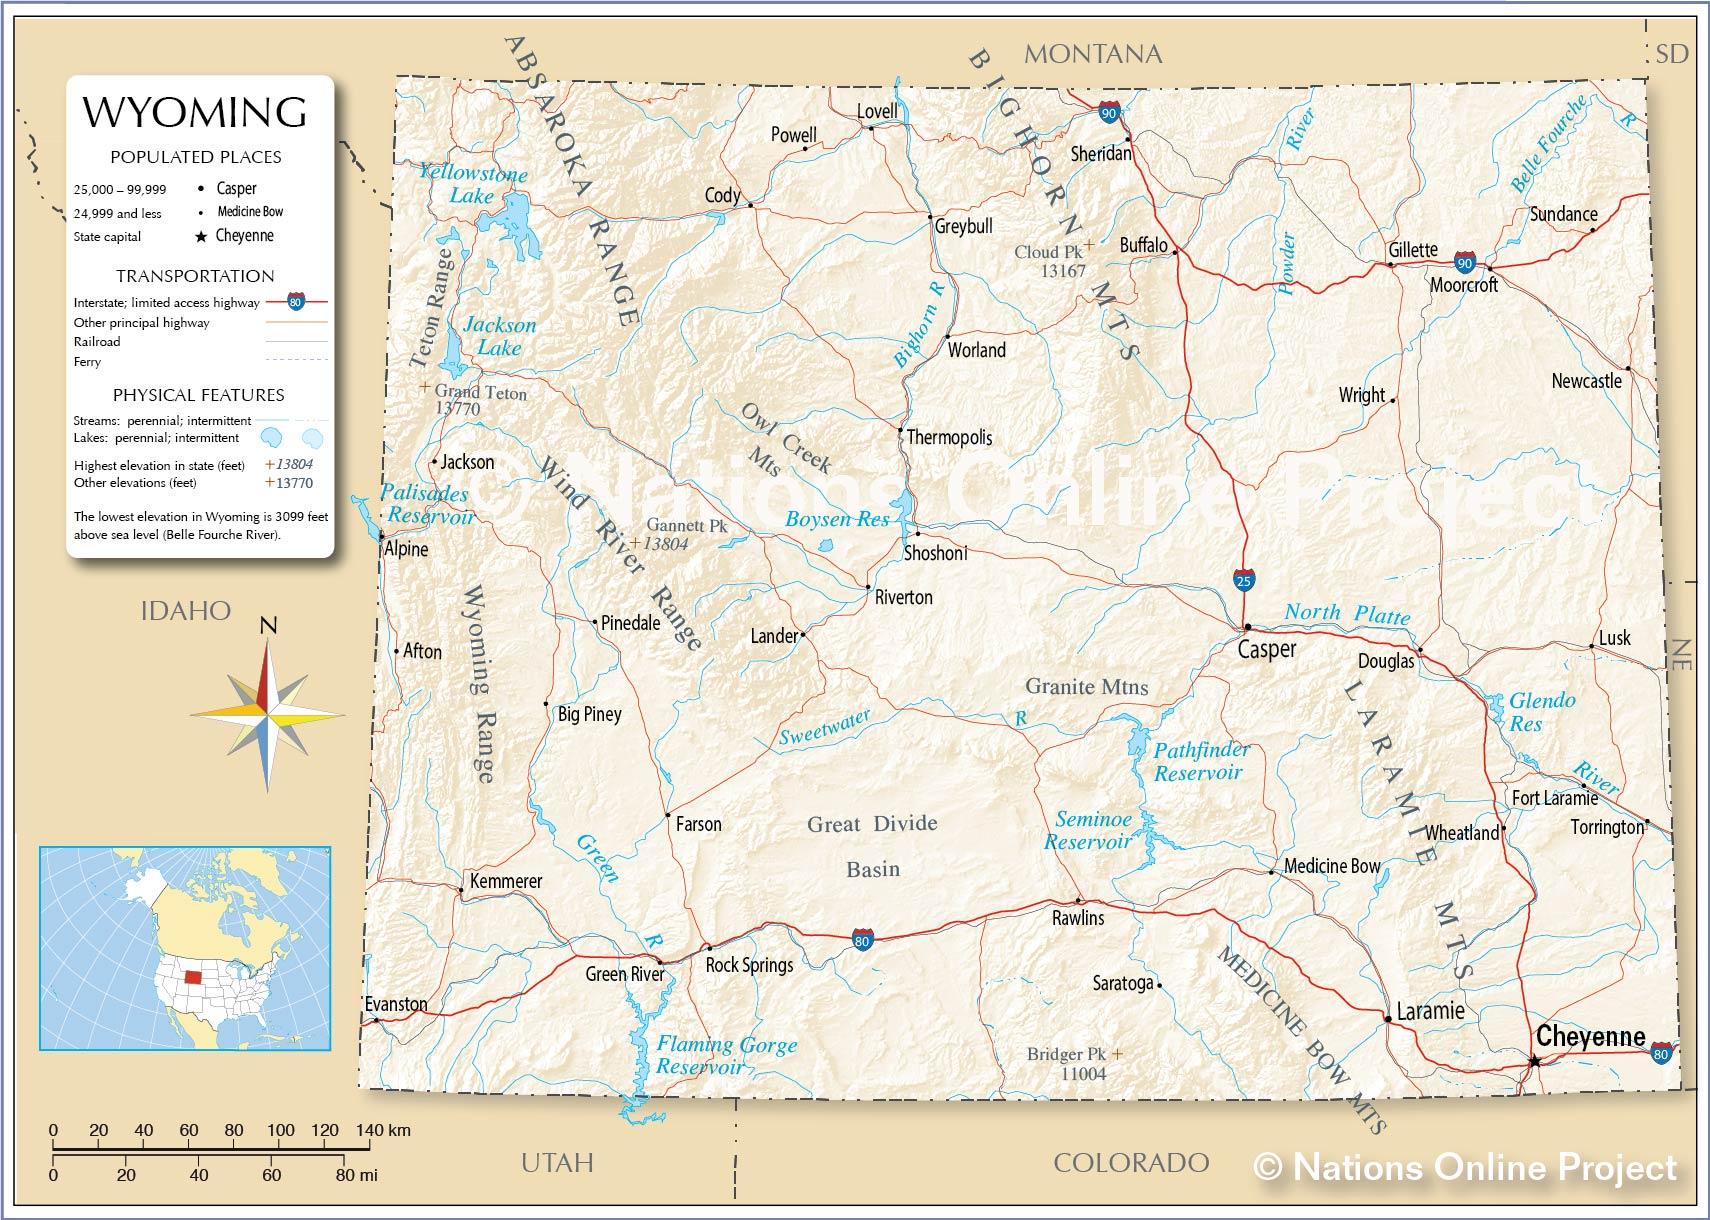 Reference Map Of Wyoming USA Nations Online Project - Wyoming map